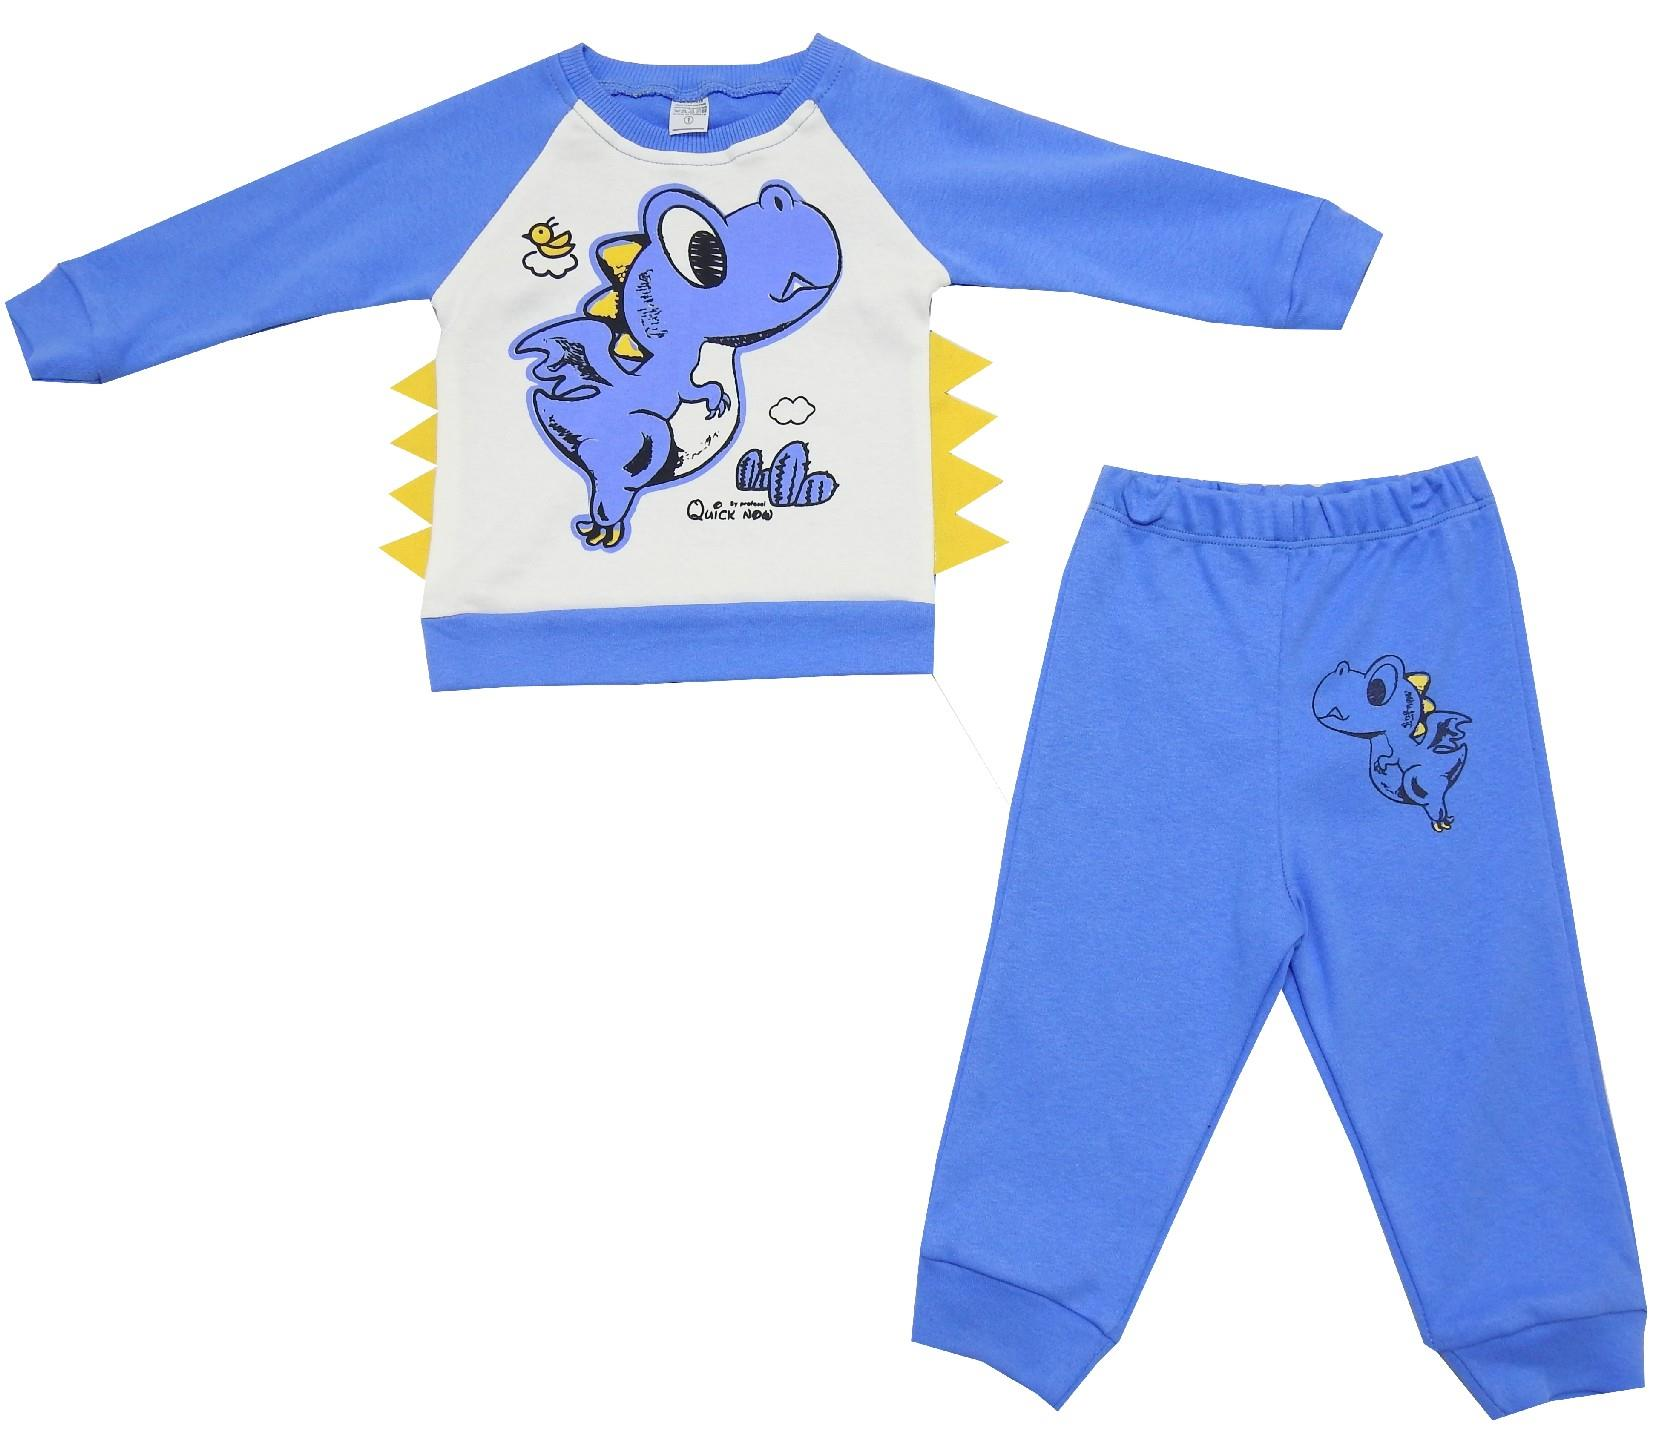 WHOLESALE DINOSAUR PRINTED SWEATSHIRT AND TROUSER DOUBLE SET FOR BOY/BABY AND KIDS (1-2-3 AGE)